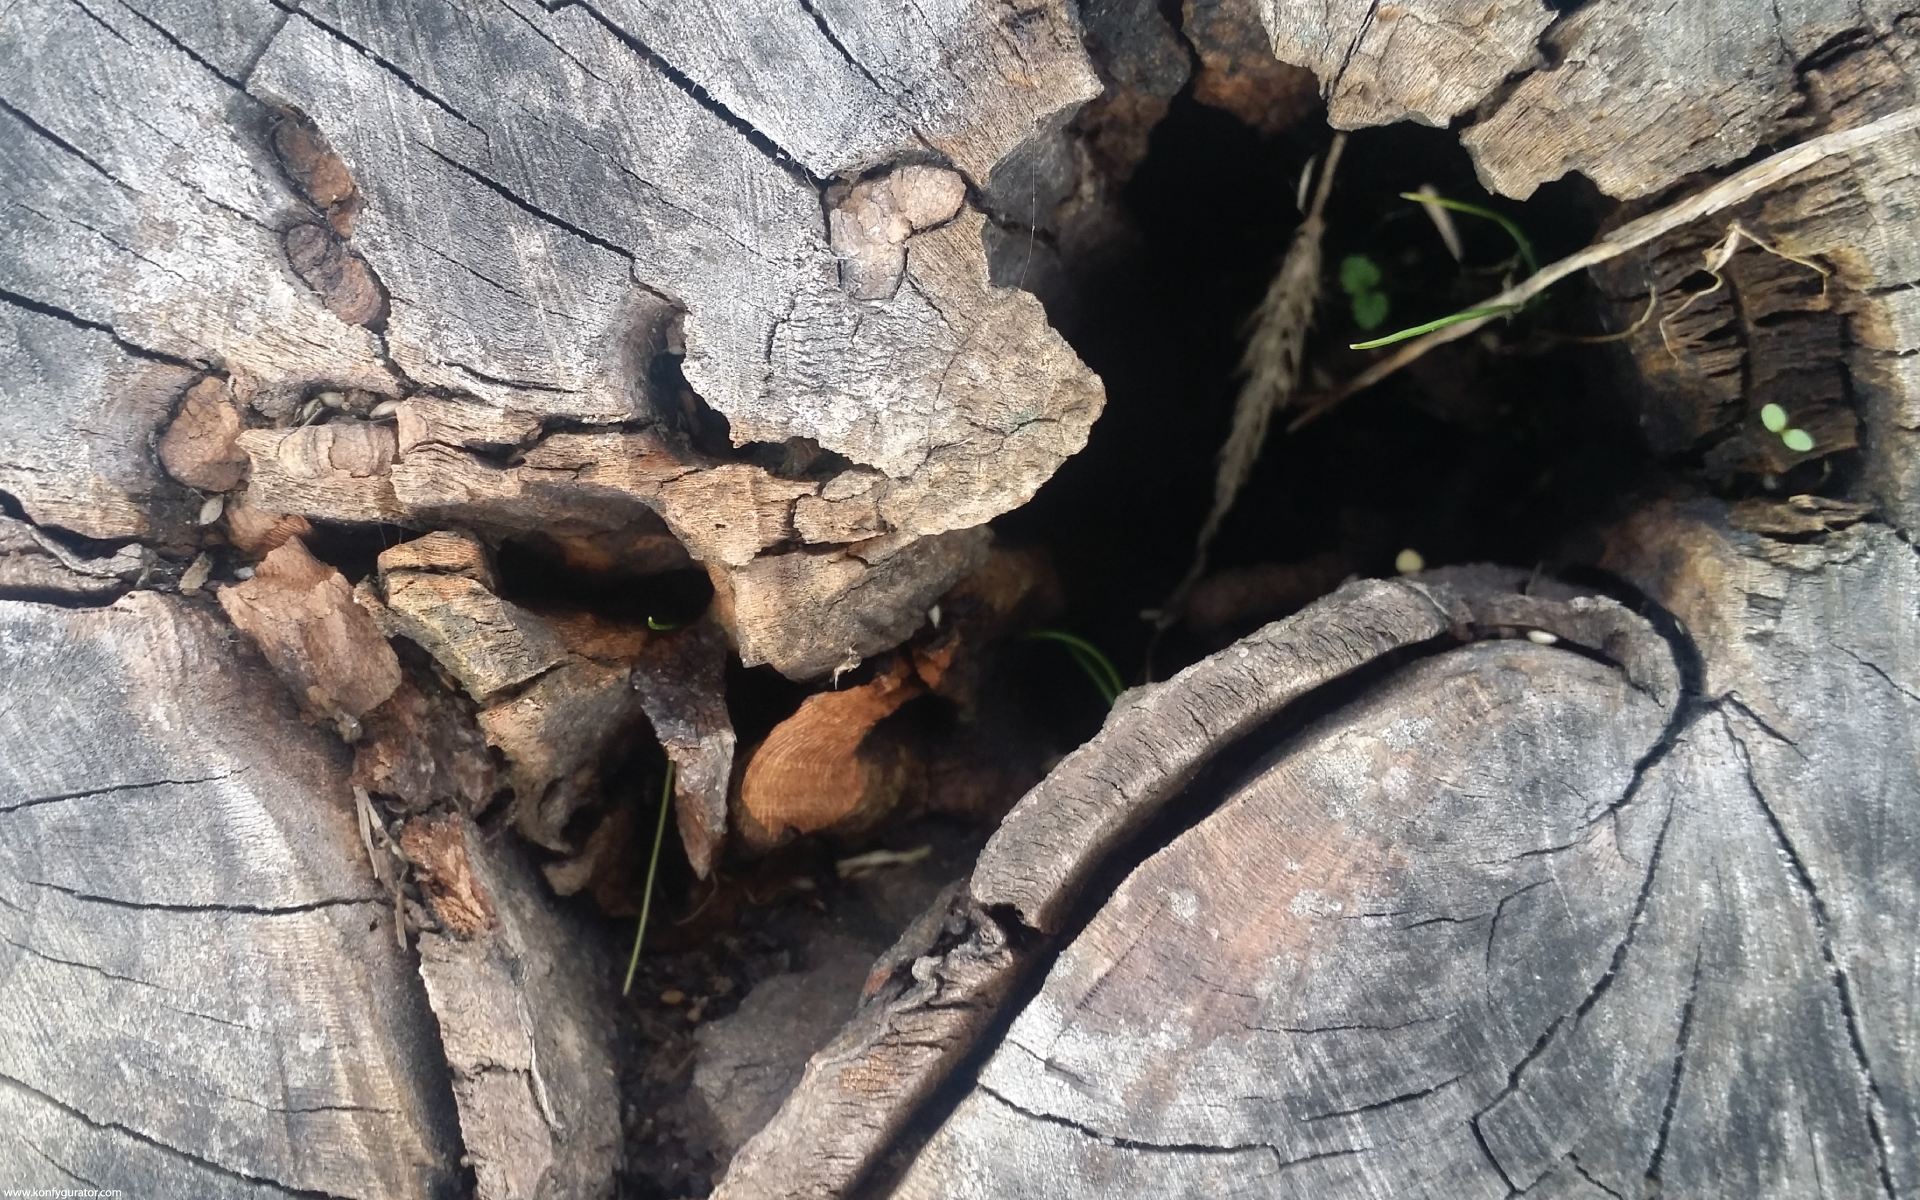 HD Wallpapers - Textures - stump, gap, rotten, hive